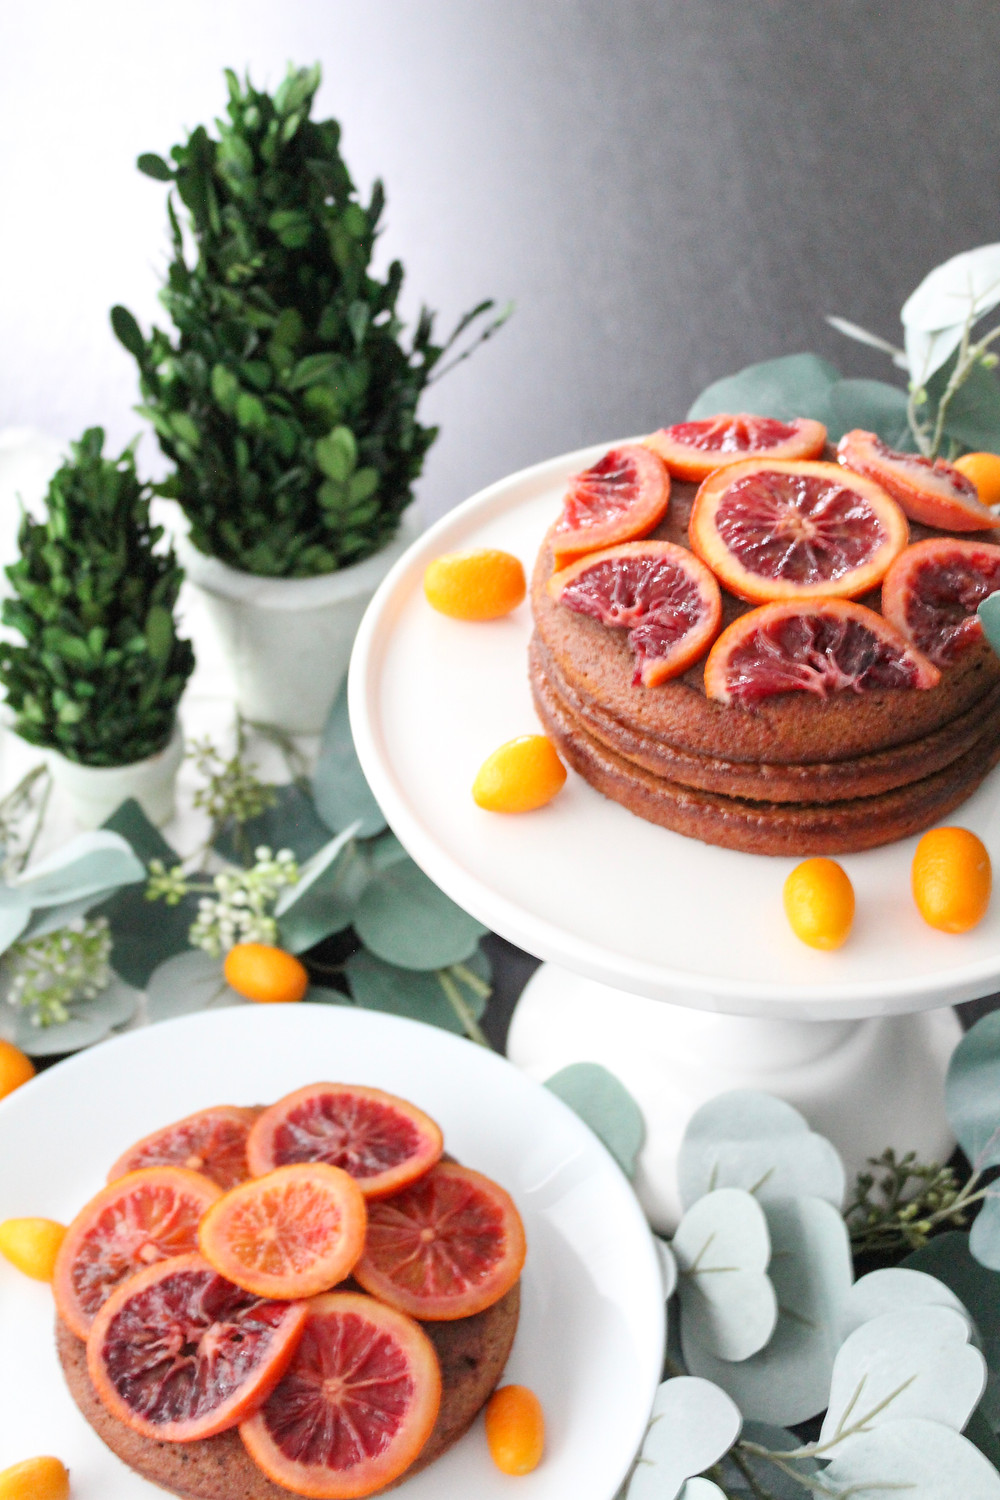 candied blood orange chocolate almond cake. #citruscake #bloodorangecake #fruitcake #wintercake